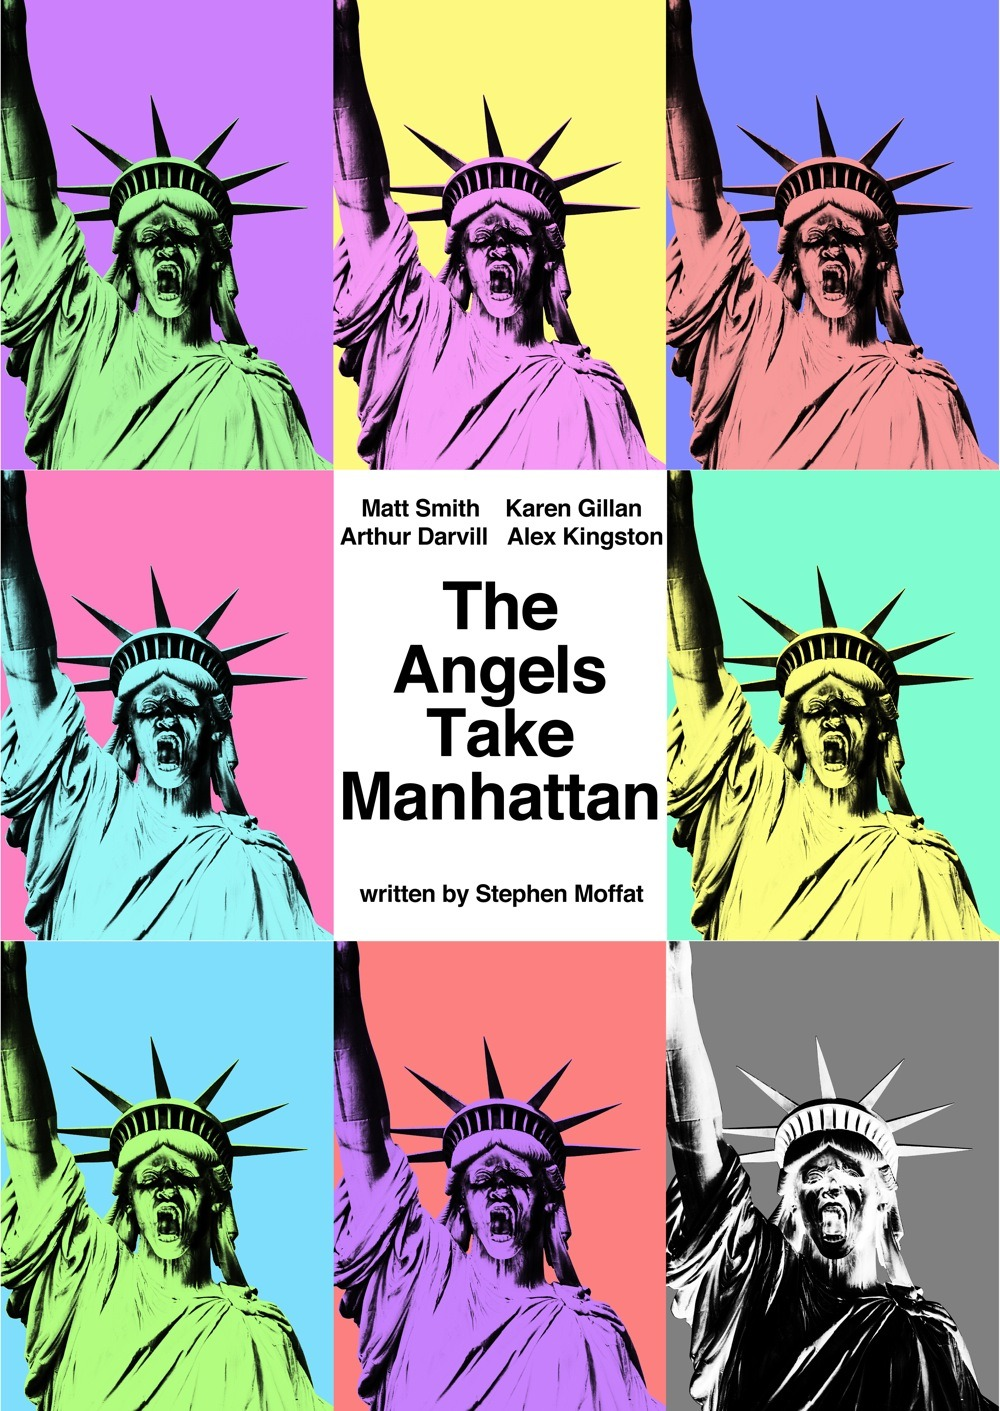 The Angels Take Manhattan 3